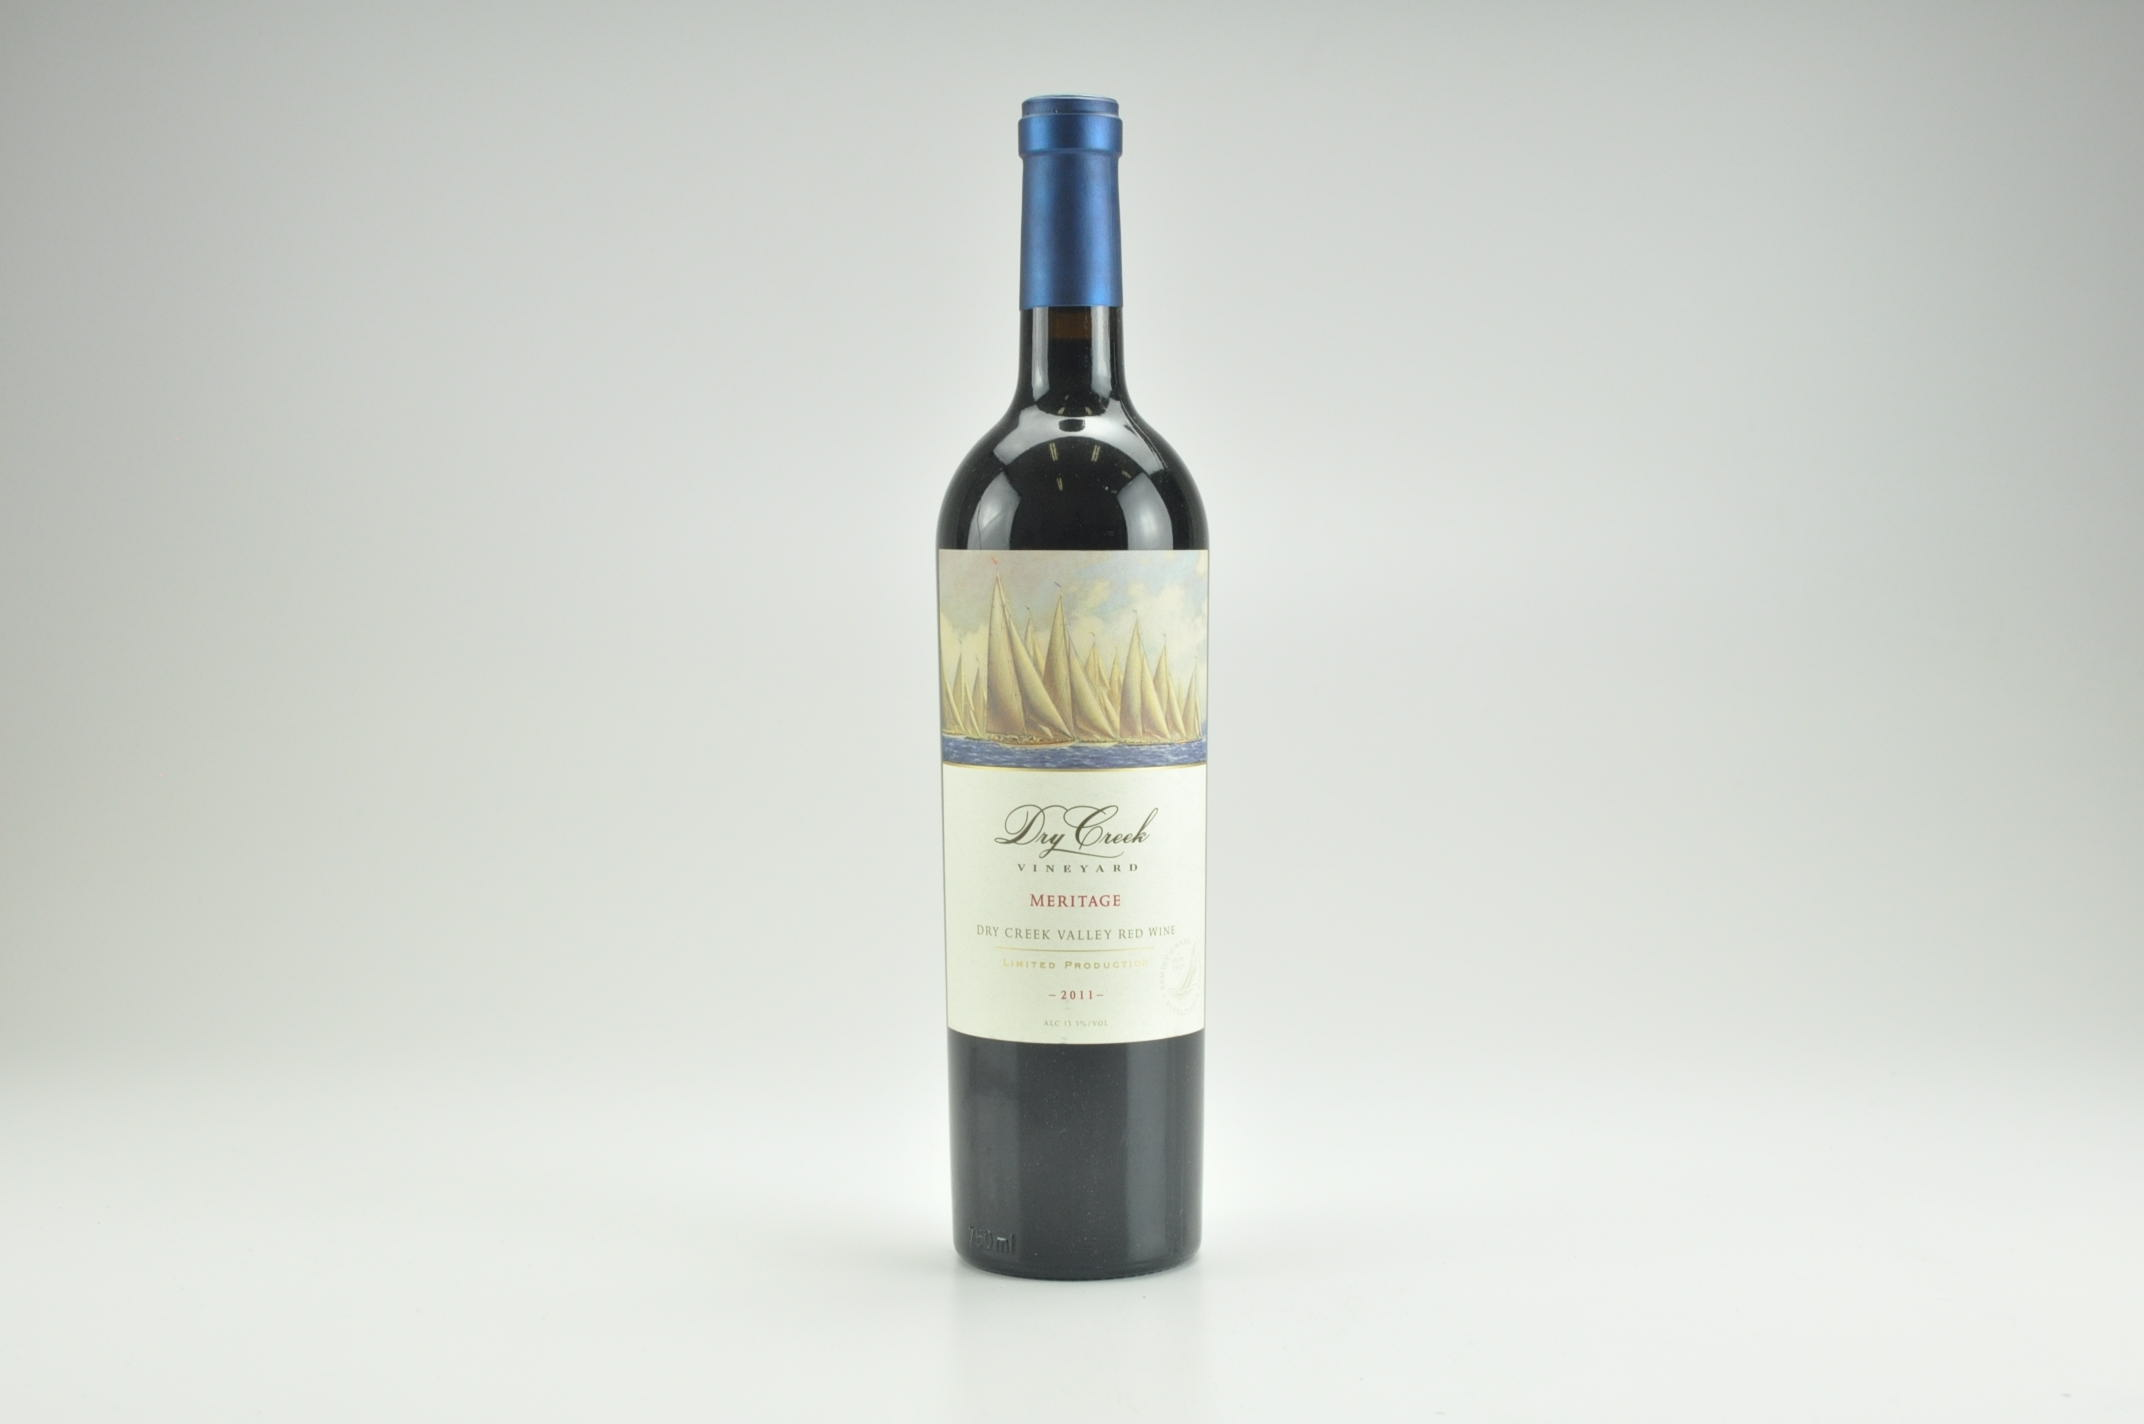 2011 Dry Creek Meritage Red Wine, Dry Creek Valley